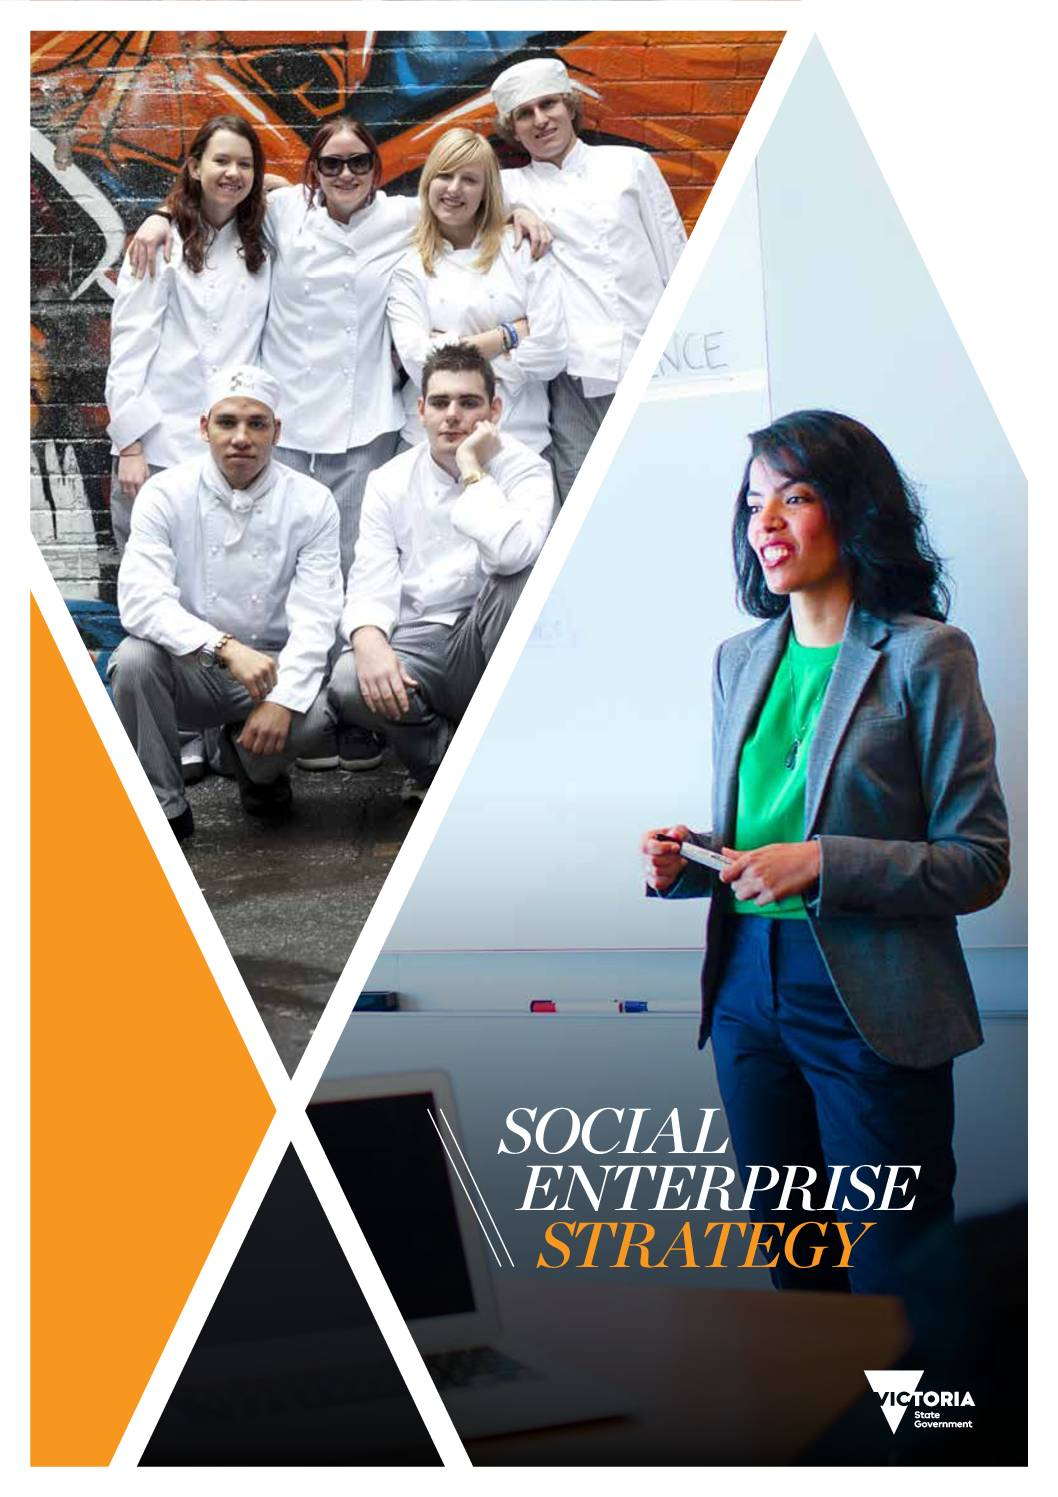 Victoria State Government Social Enterprise Strategy